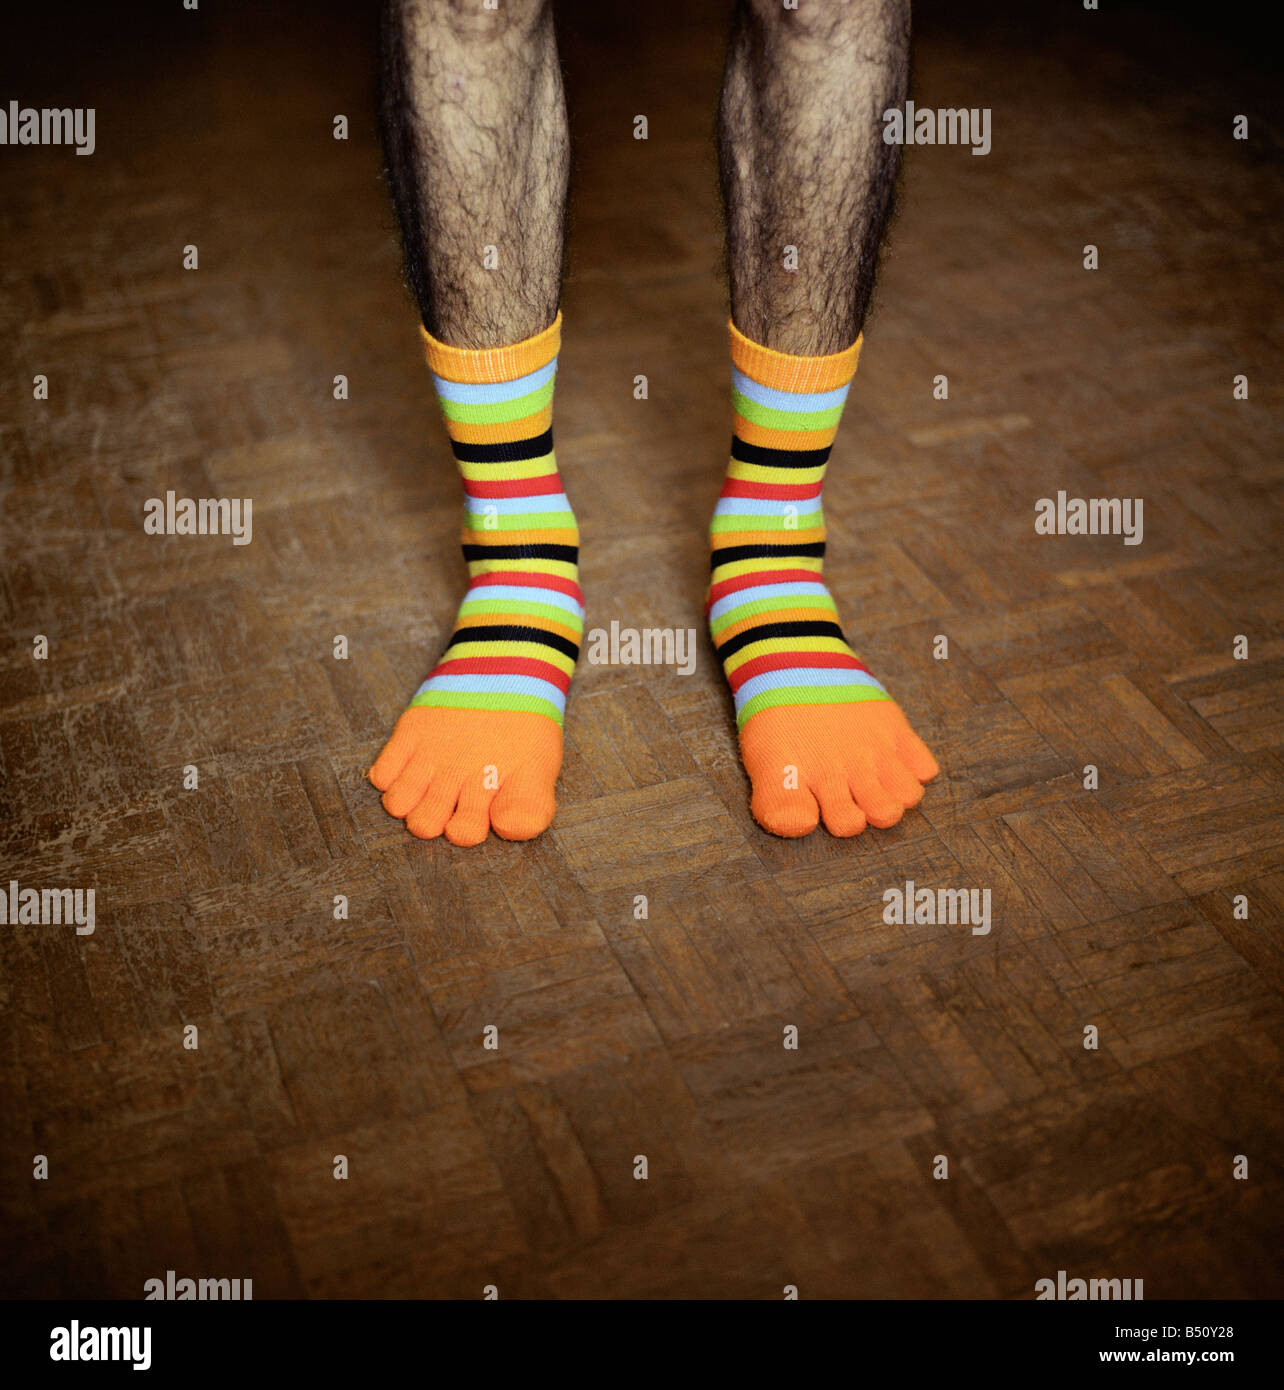 Low section view of a man wearing funny socks - Stock Image